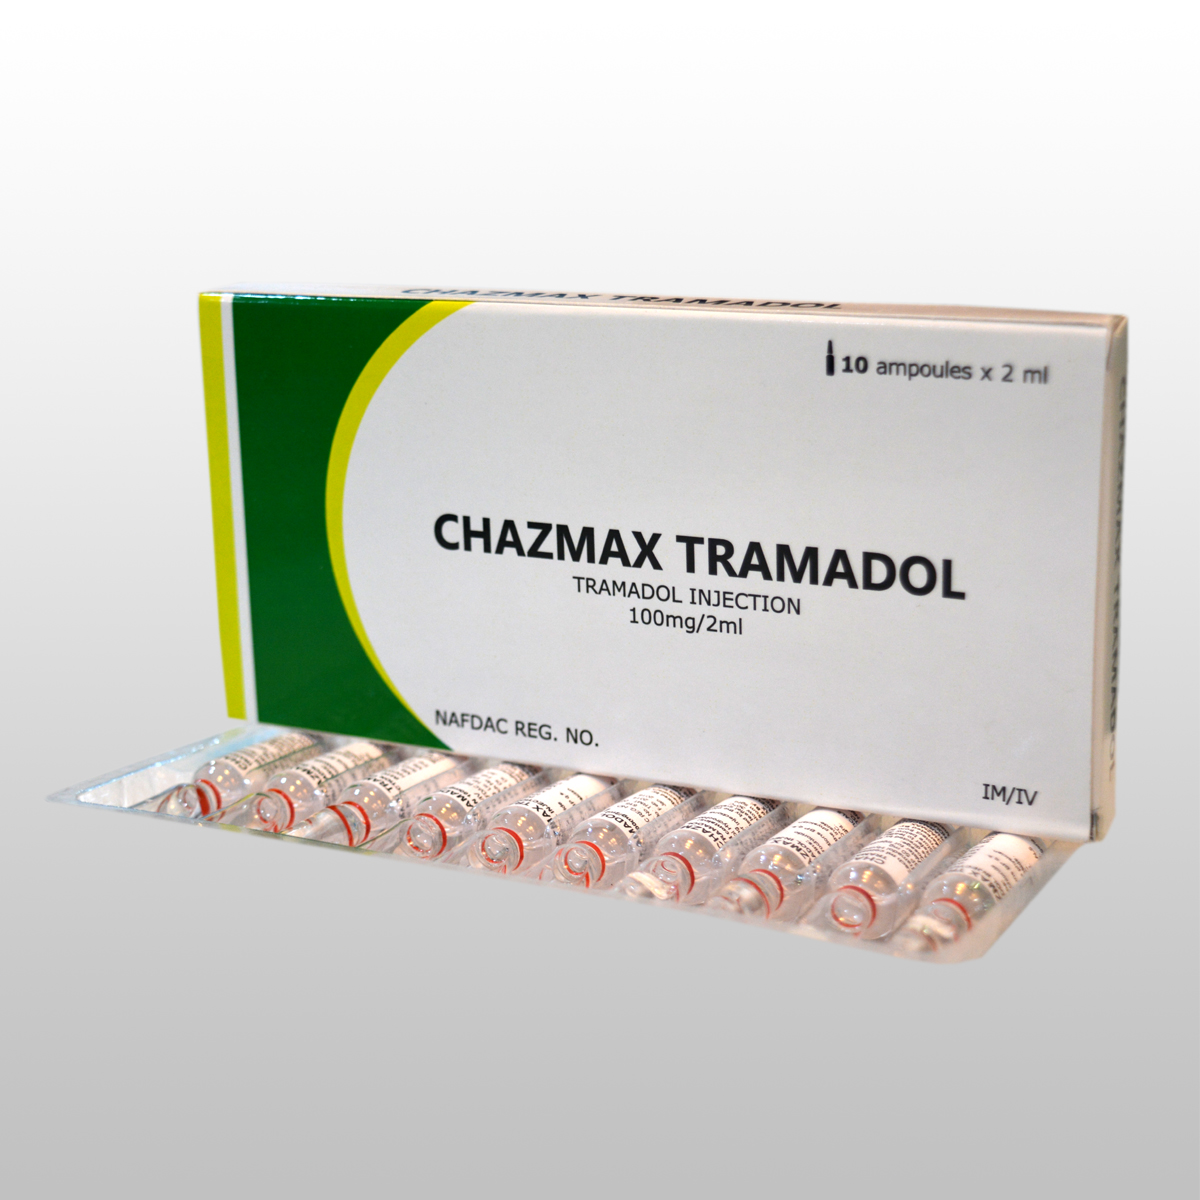 TRAMADOL INJECTION 100mg/2ml,